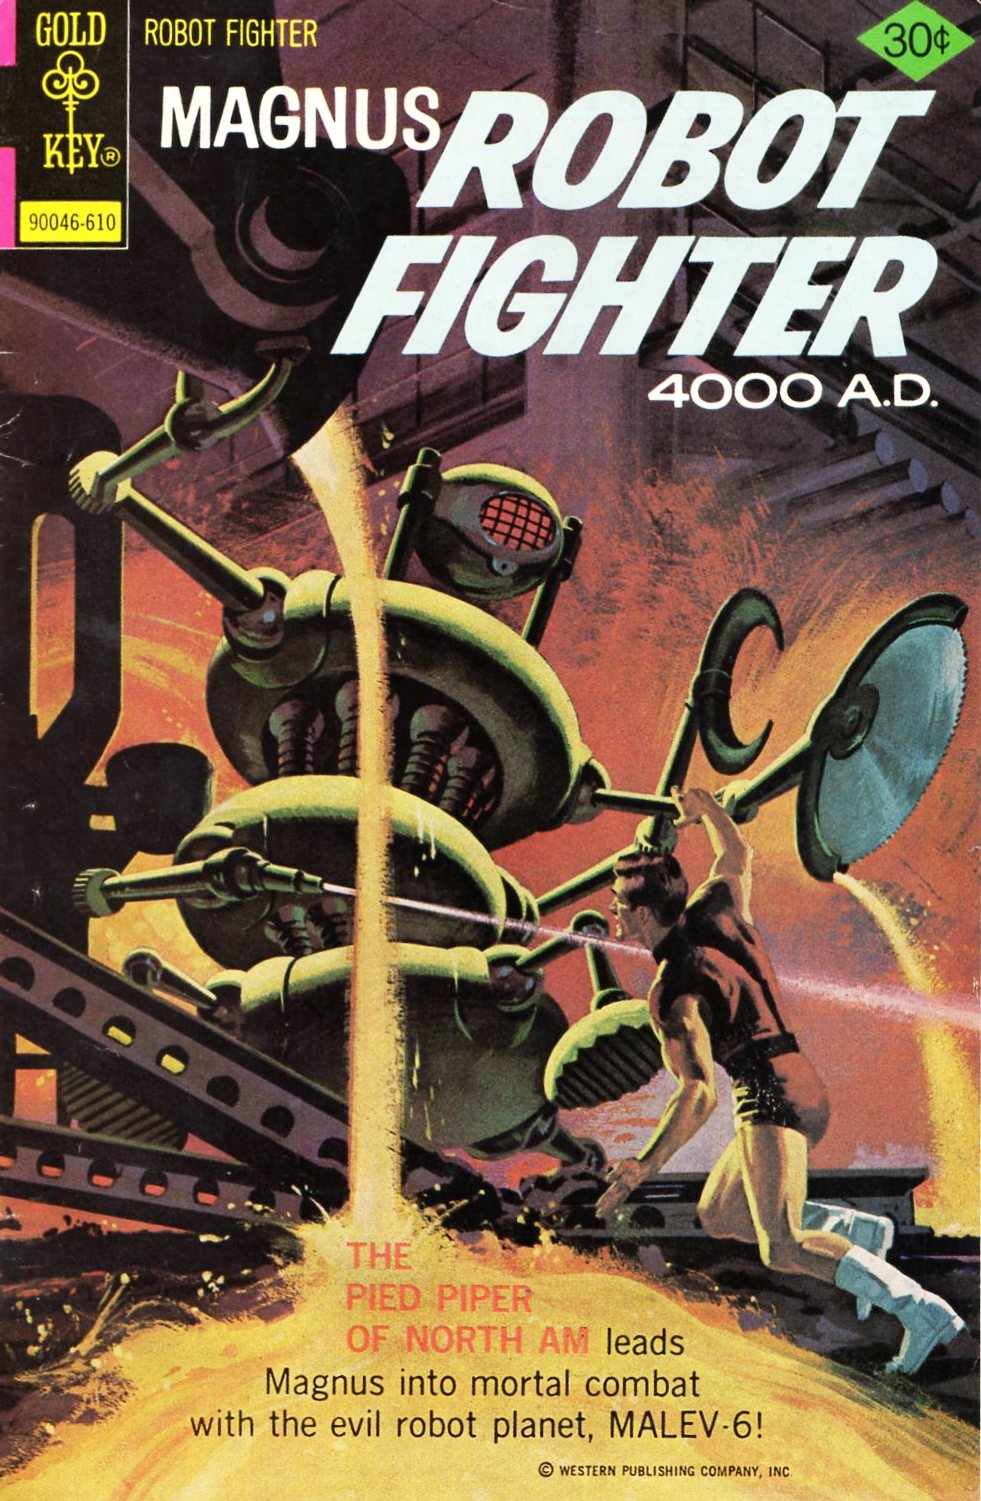 Magnus Robot Fighter 4000 Ad Issue 45 Read Magnus Robot Fighter 4000 Ad Issue 45 Comic Online In High Classic Comic Books Sci Fi Comics Silver Age Comics